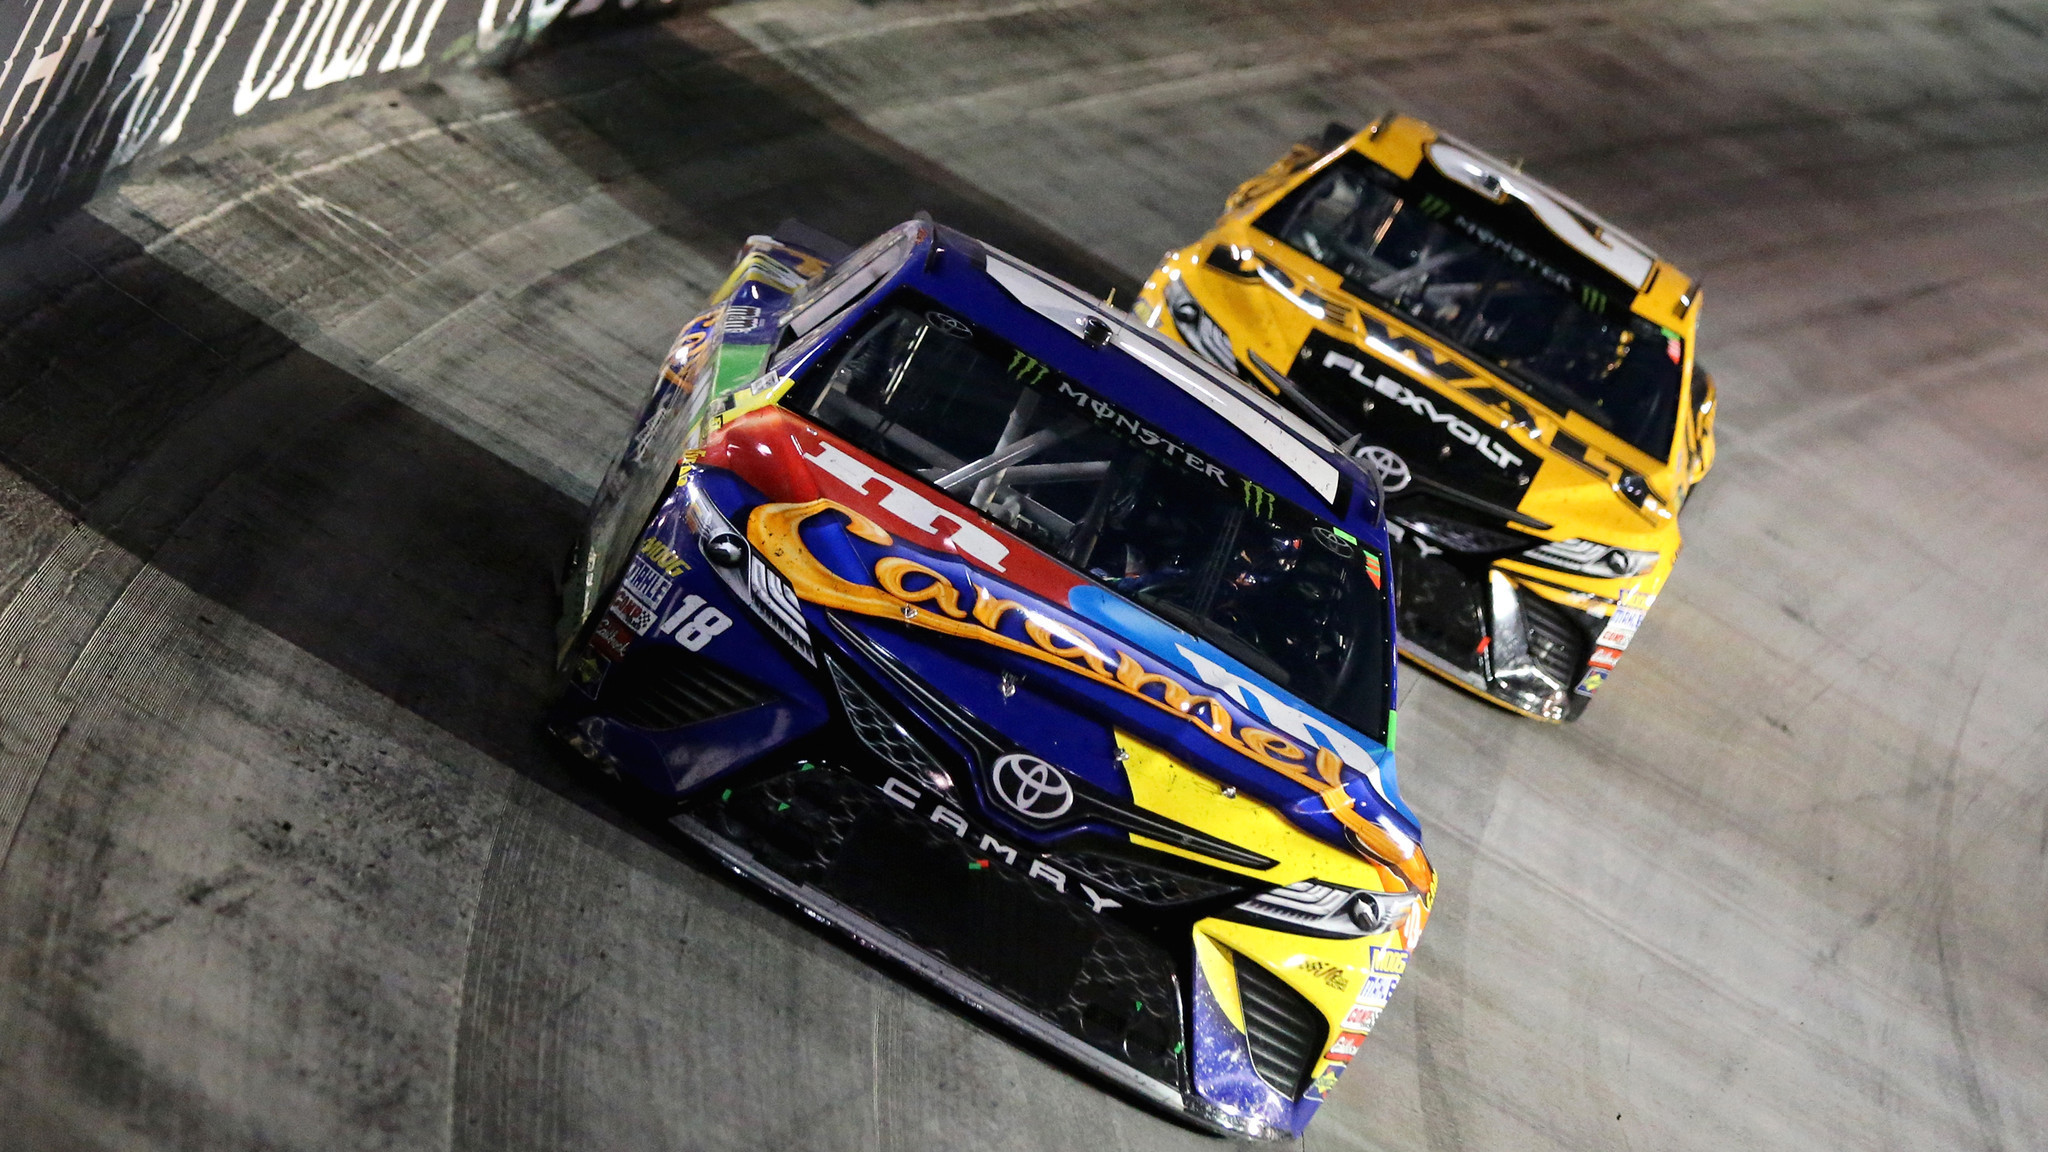 Kyle Busch sweeps at Bristol with a victory in the NASCAR Cup race